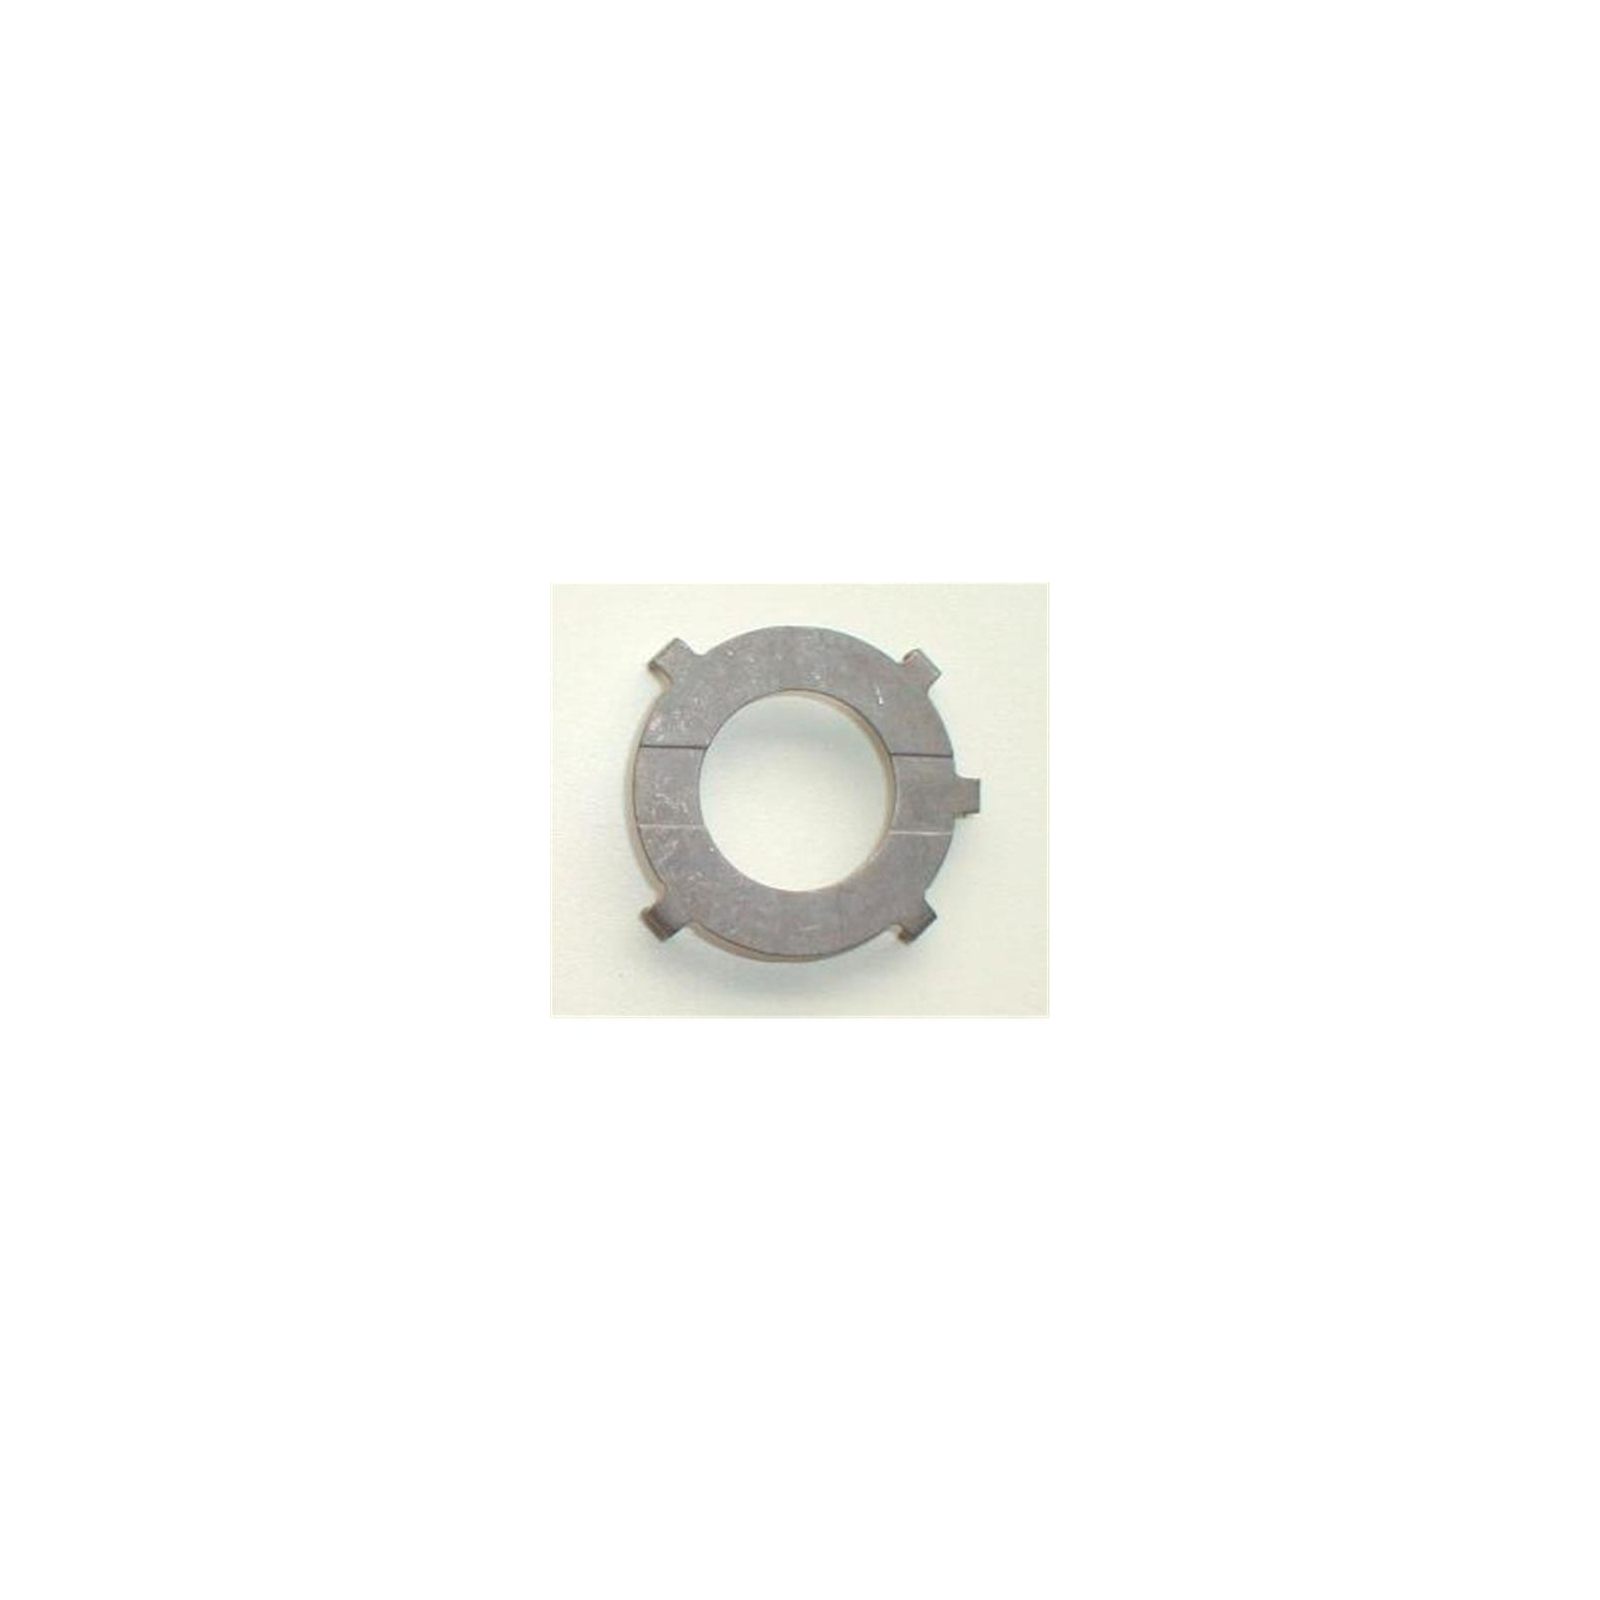 Chrysler Automatic Transmission Washer 5 Tabs 88-up